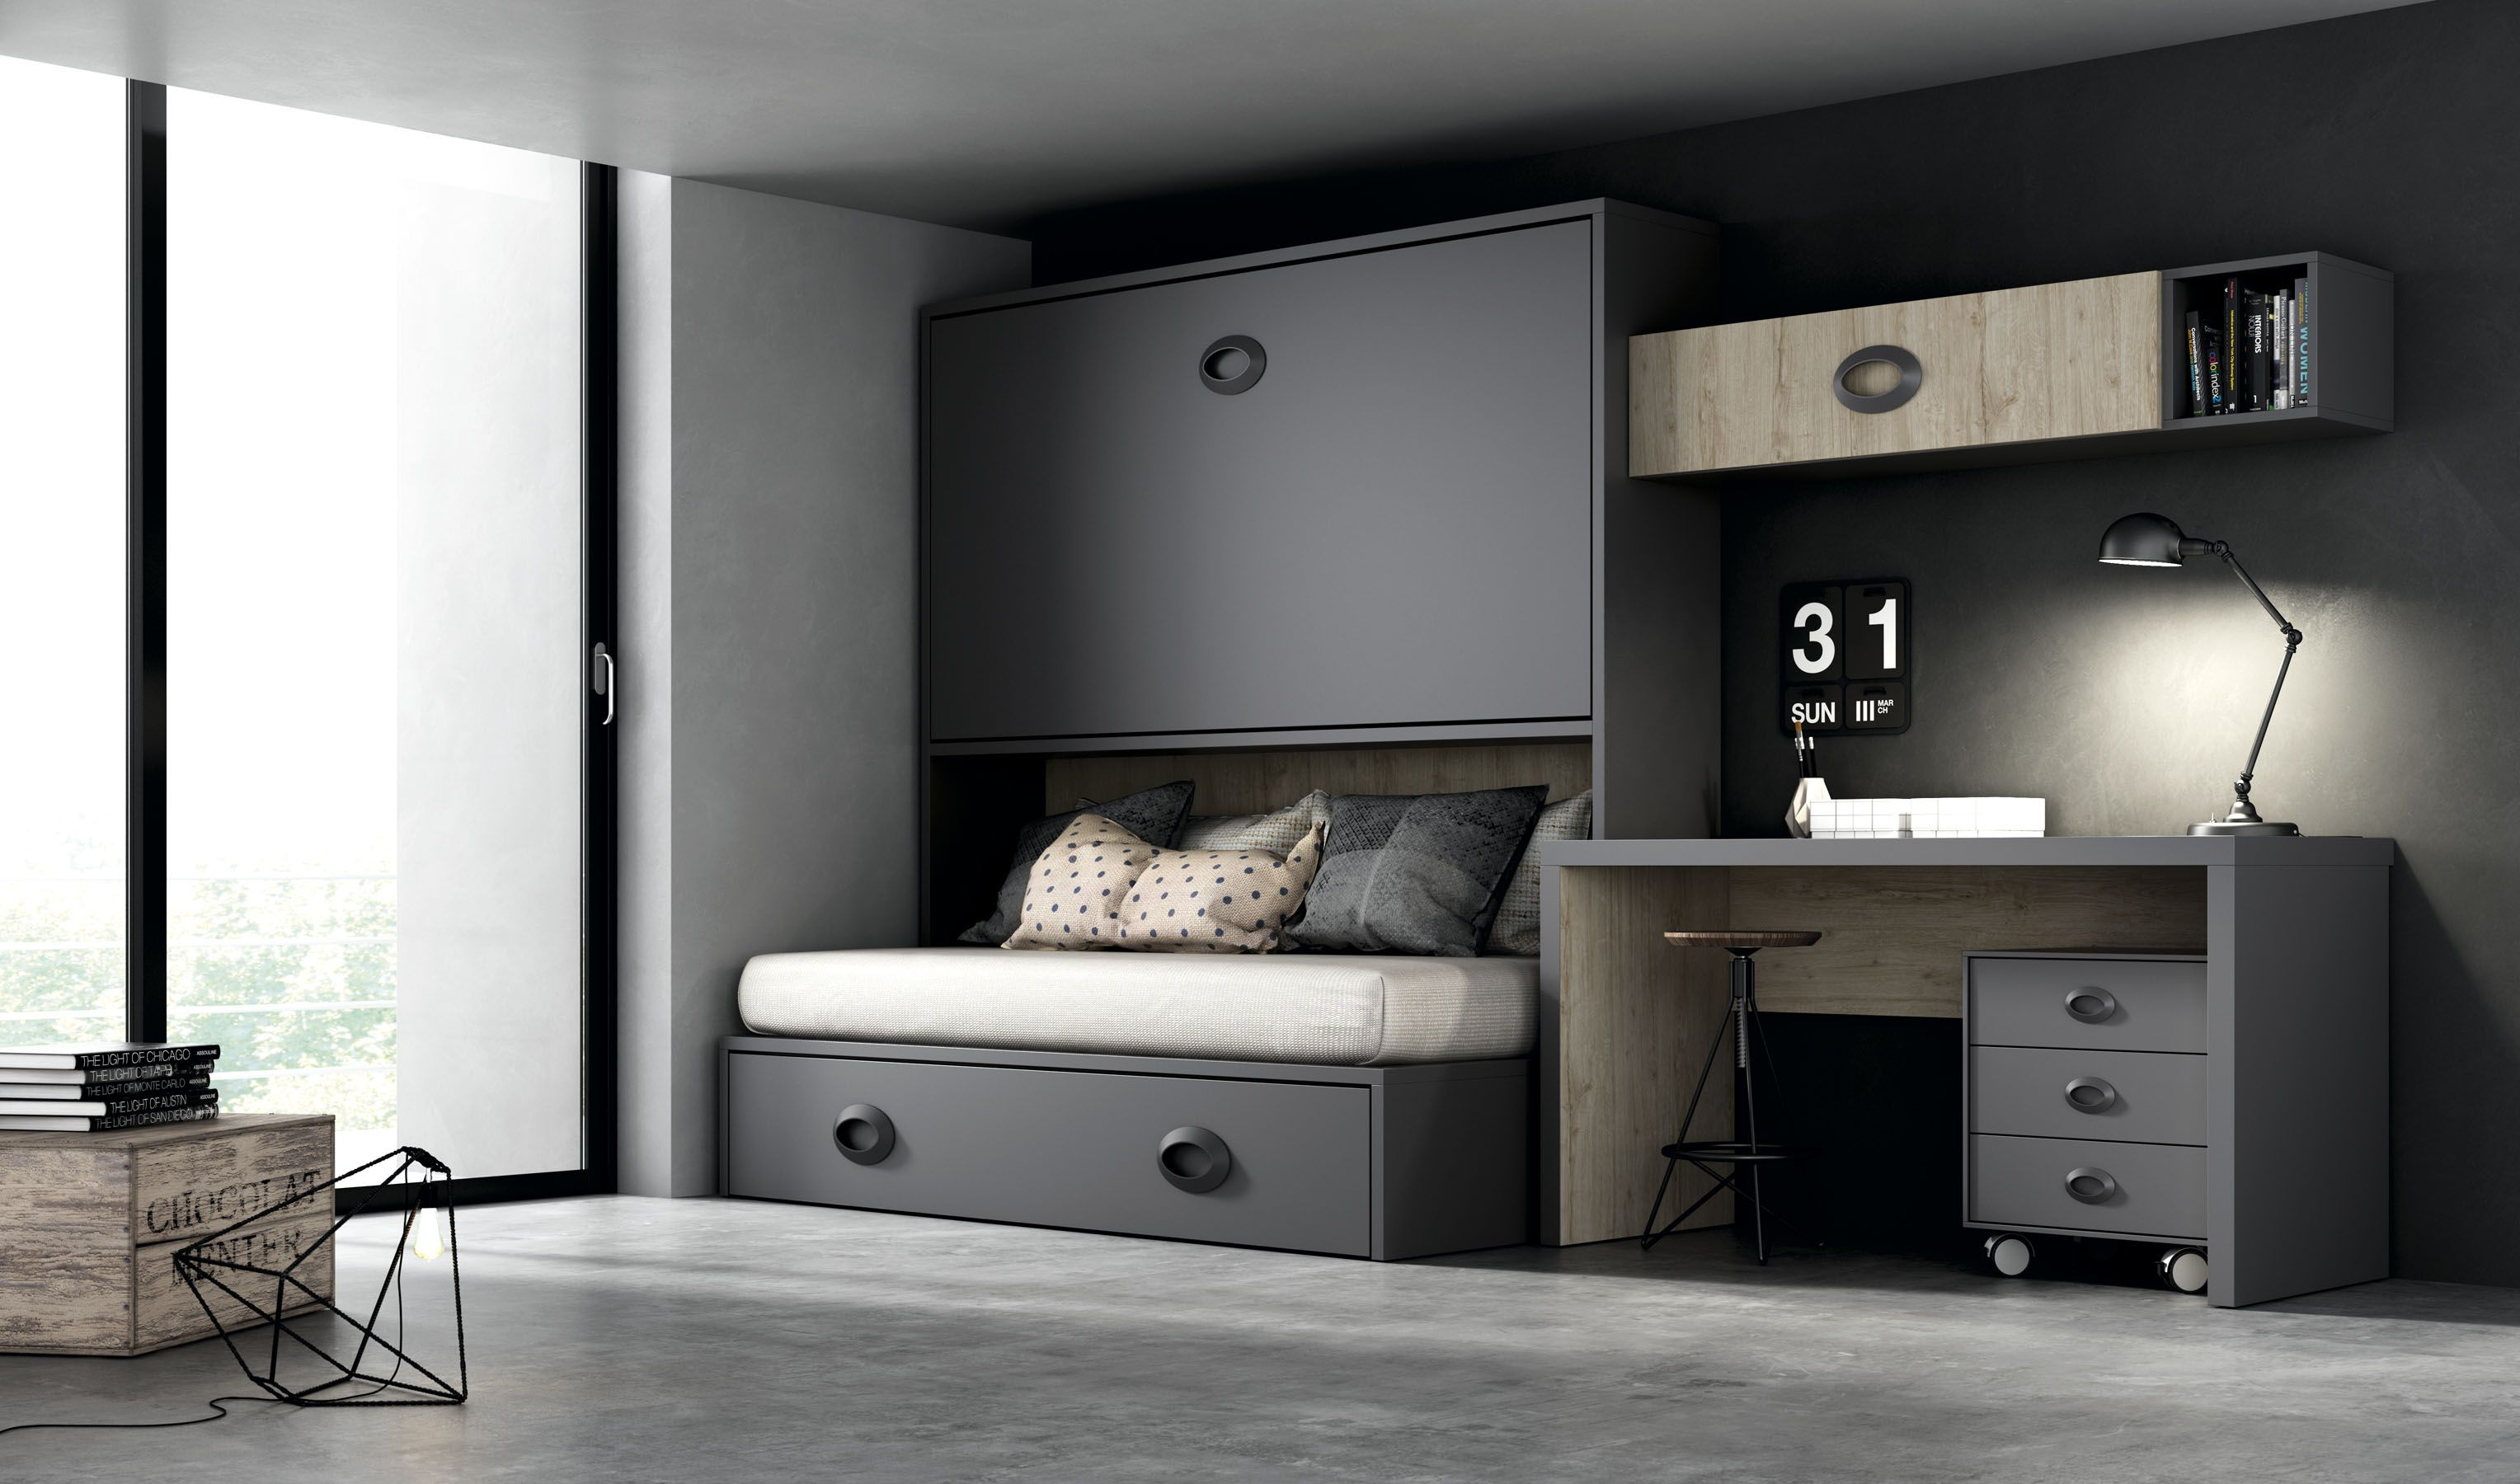 Sistemas Abatibles Qb By Tegarmobel Ideas Decoraci N Pinterest  # Muebles Tegarmobel